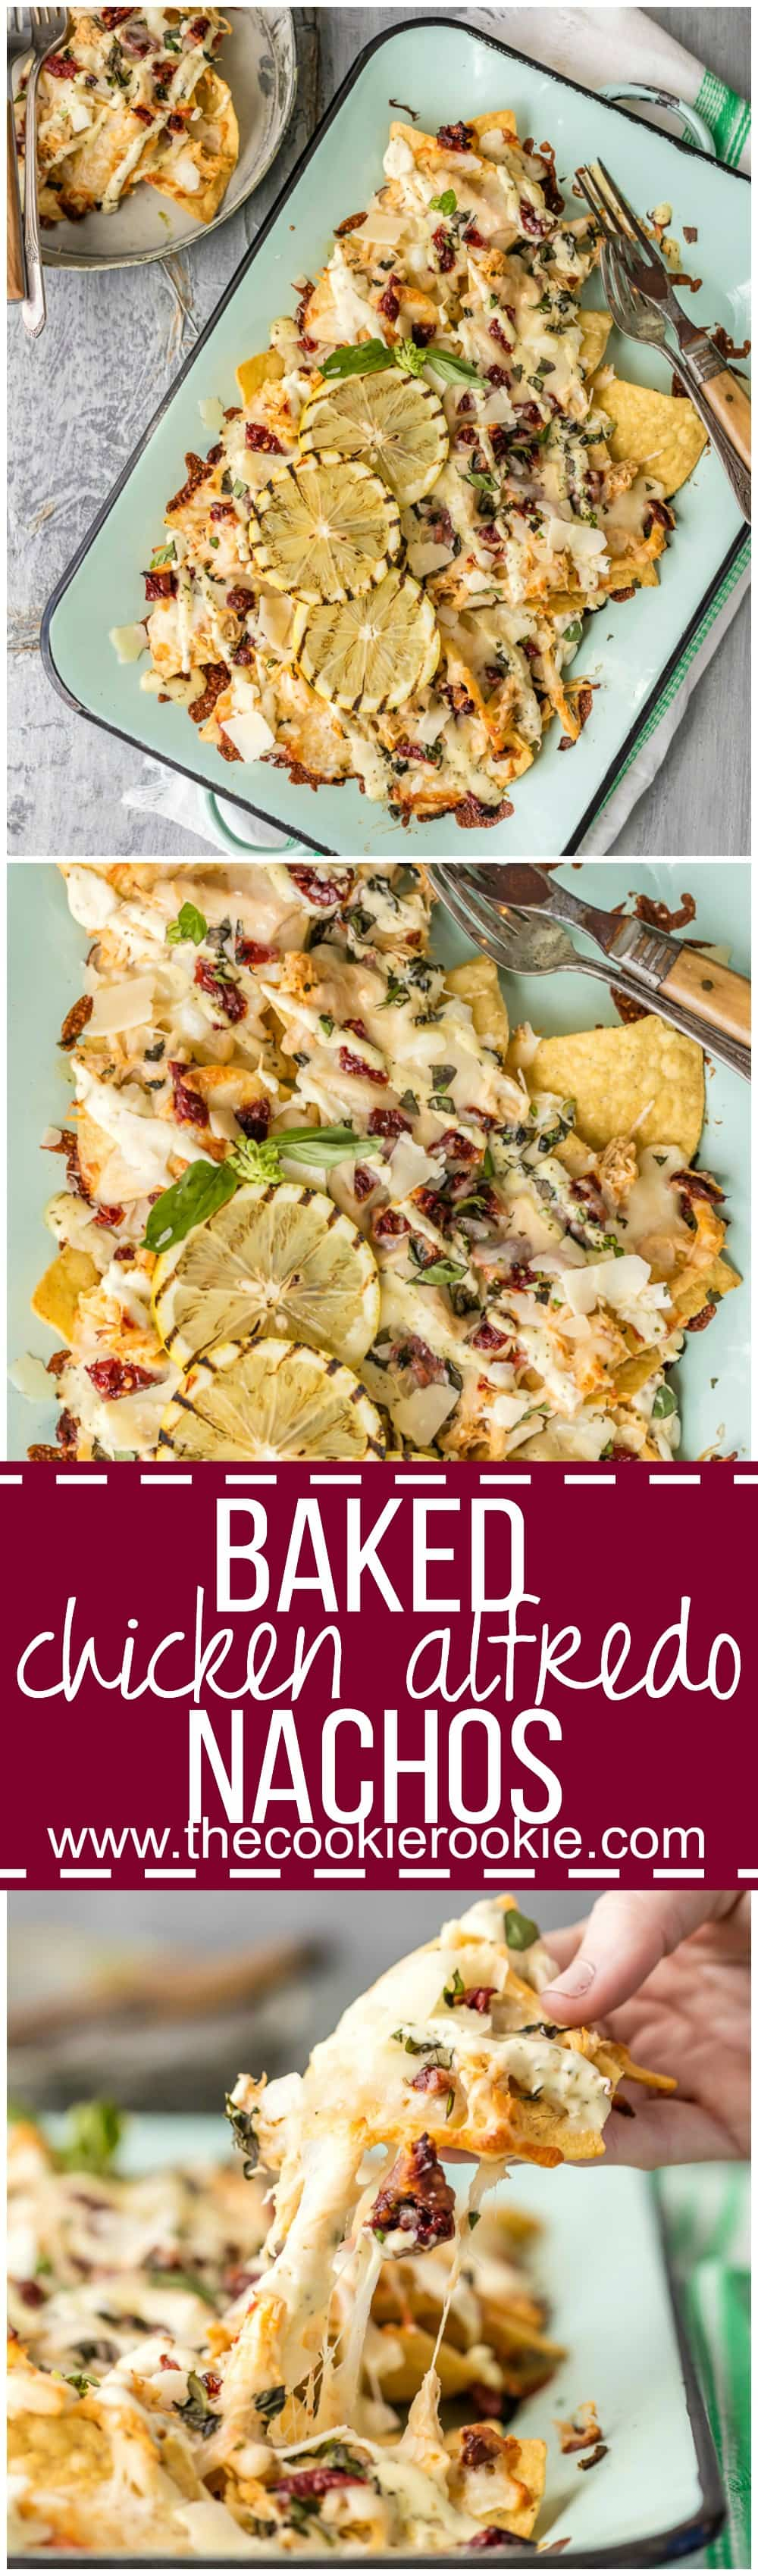 Stop everything and make BAKED CHICKEN ALFREDO NACHOS! The Pulled Chicken Alfredo is made in a slow cooker, then baked onto tortilla chips along with lots of cheese, alfredo, sun dried tomatoes, and basil! TO DIE FOR!